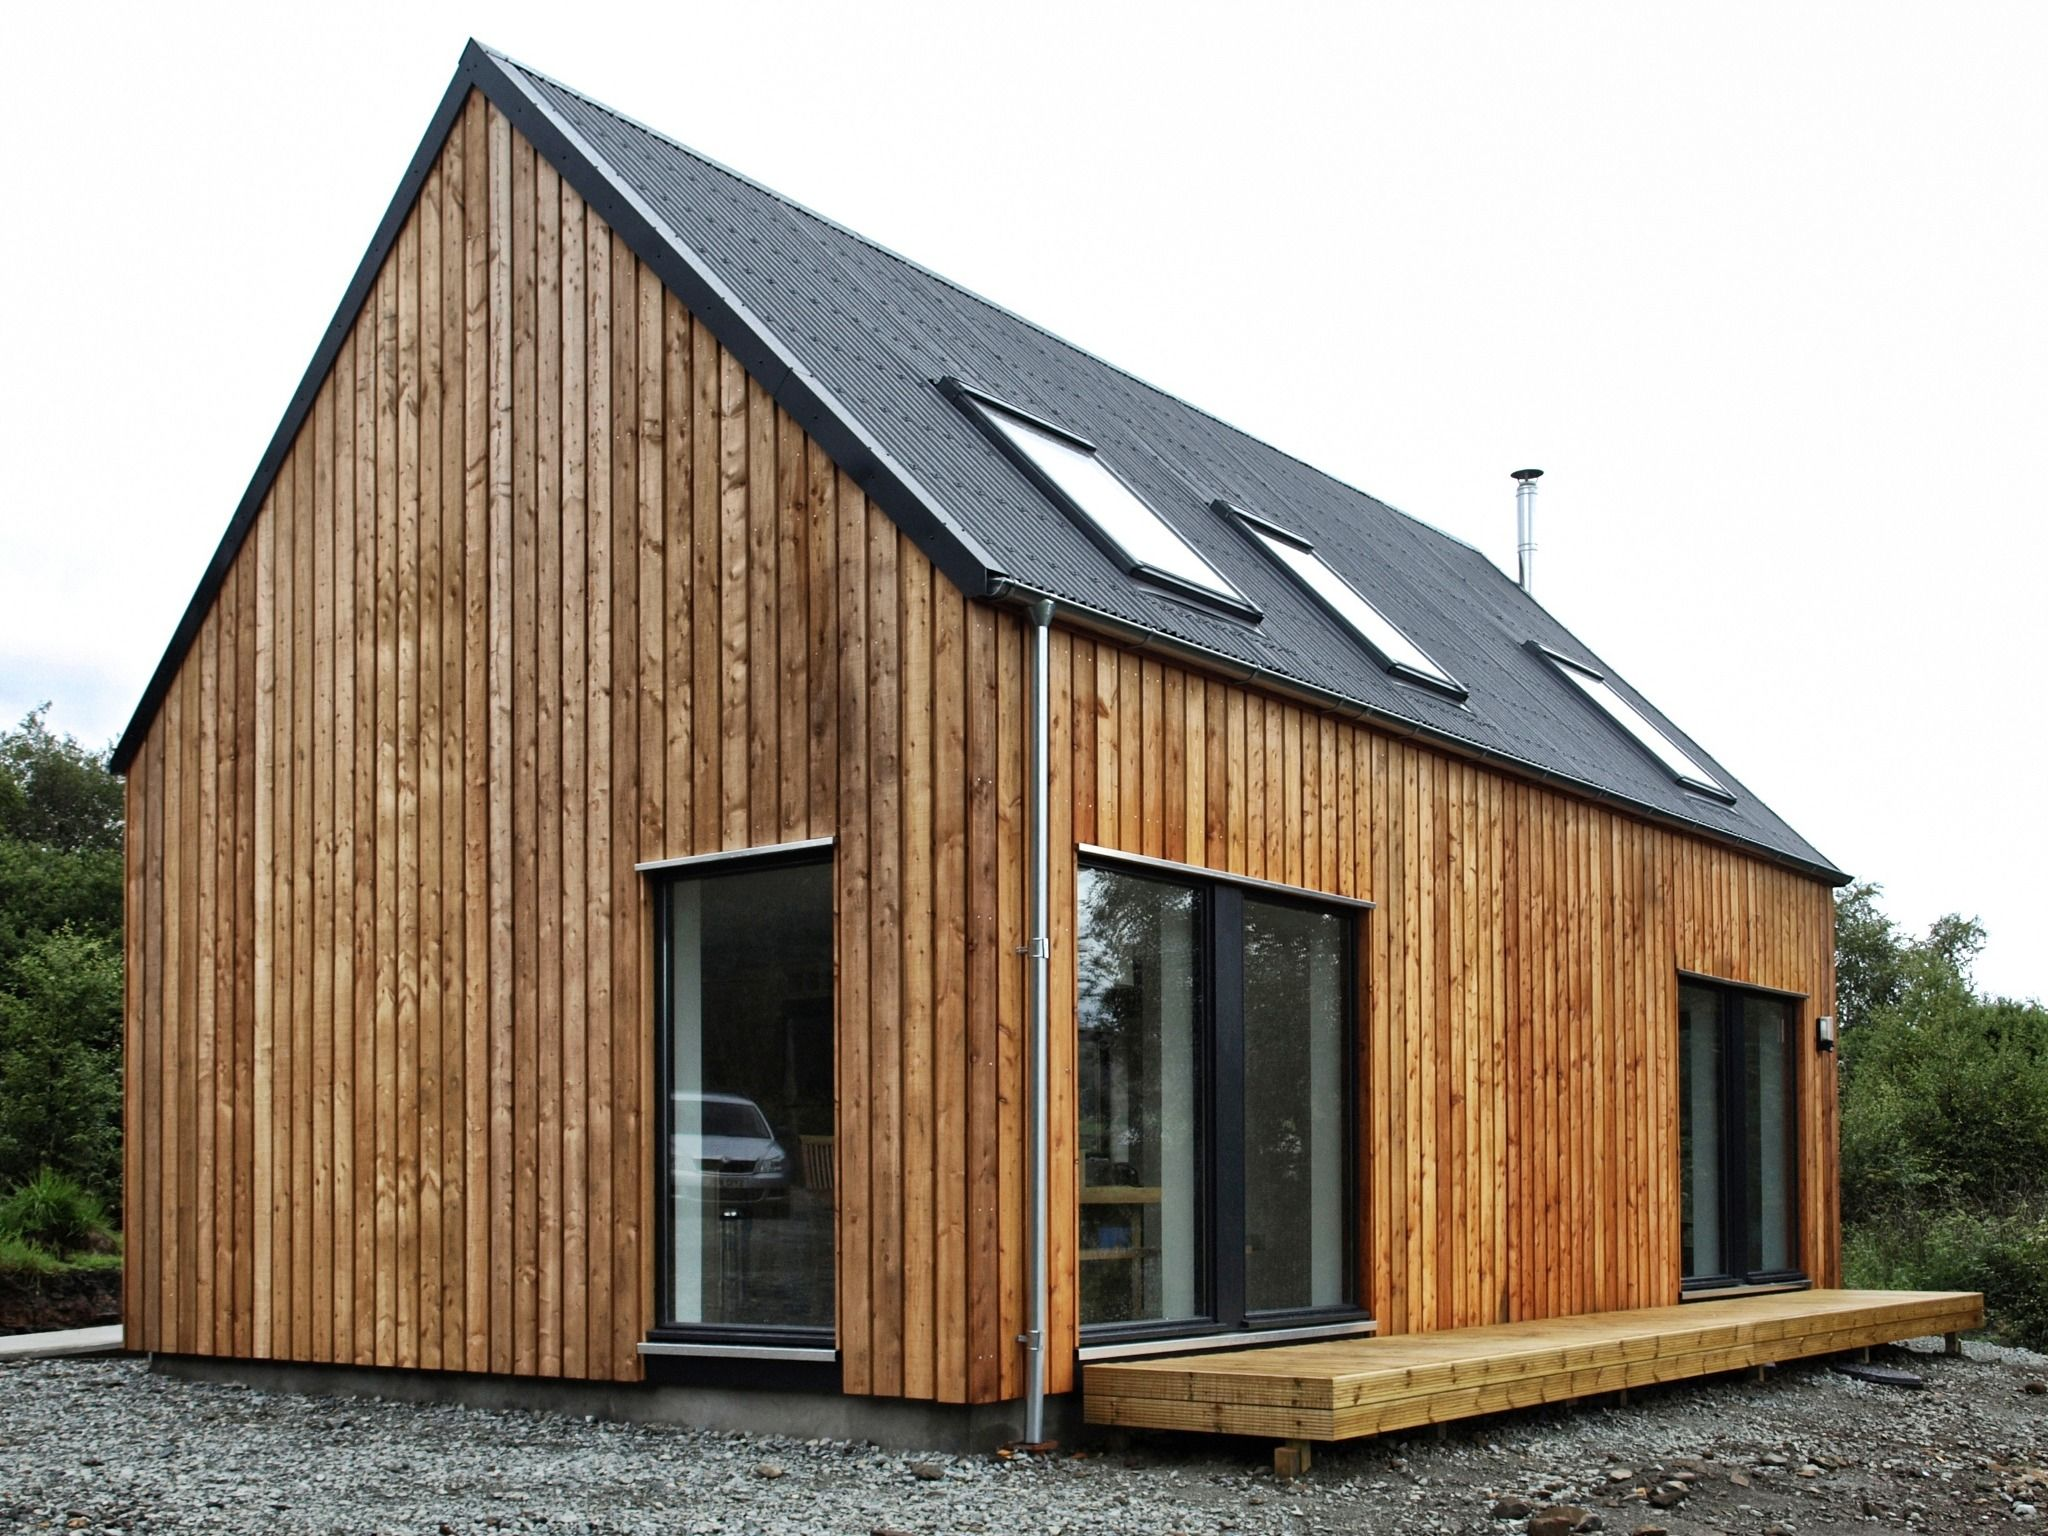 Vintage timber frame barn addition farmhouse exterior burlington -  Based In The Isle Of Skye And Working Throughout The Highlands And Islands Of Scotland Specialising In Timber Construction And Sustainable Design